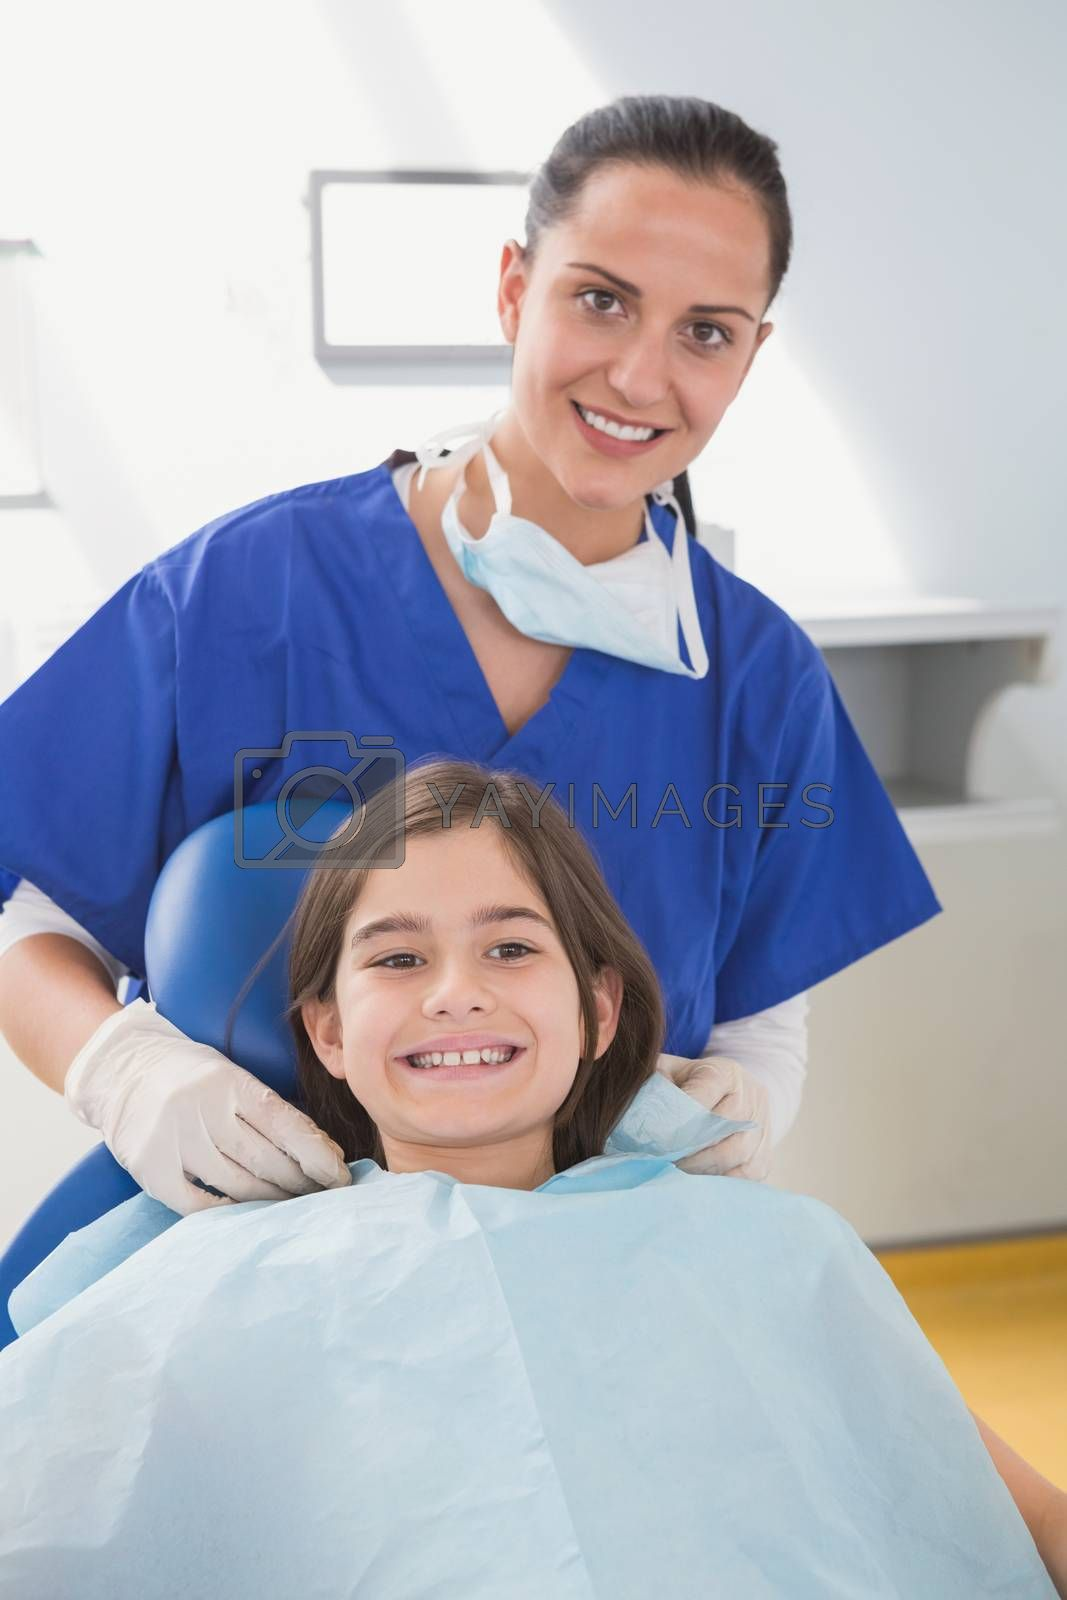 Pediatric dentist putting on her young patient the scrubs in dental clinic